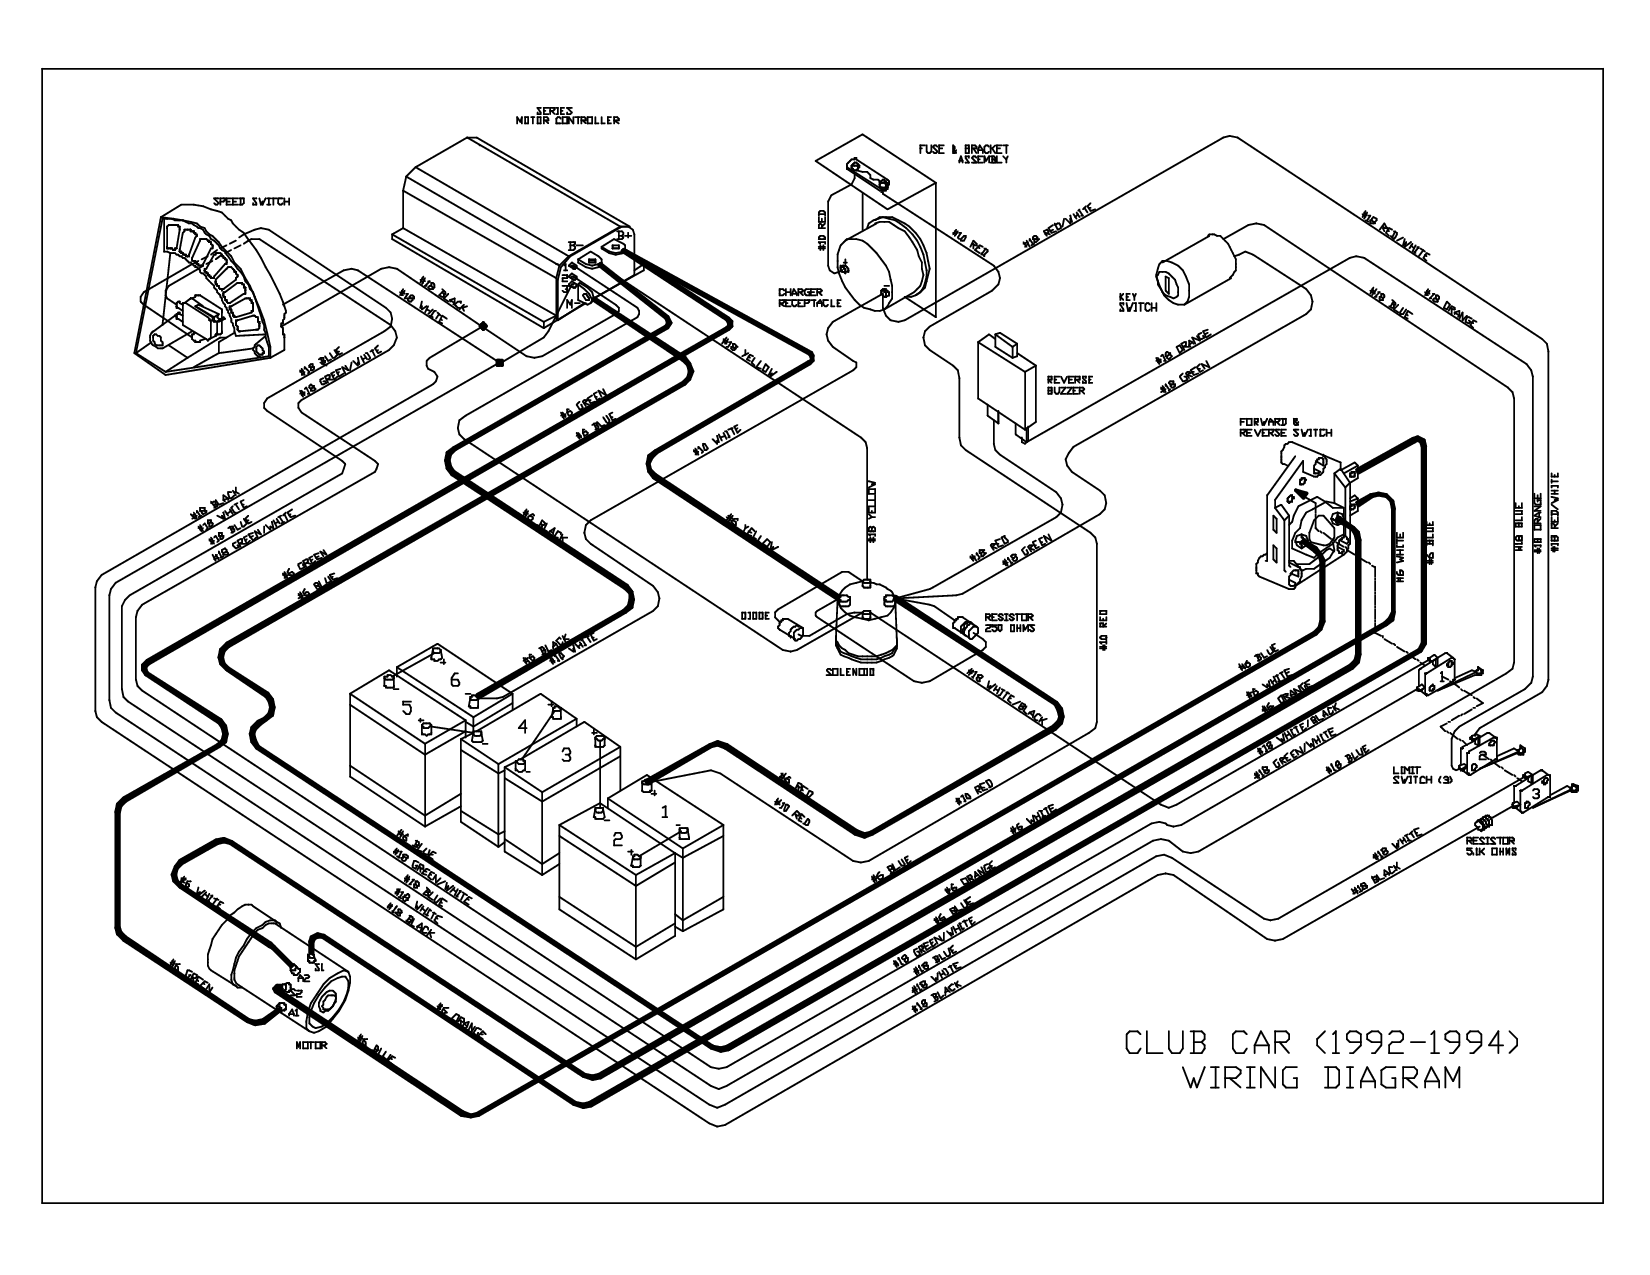 2011 club car precedent wiring diagram 48v